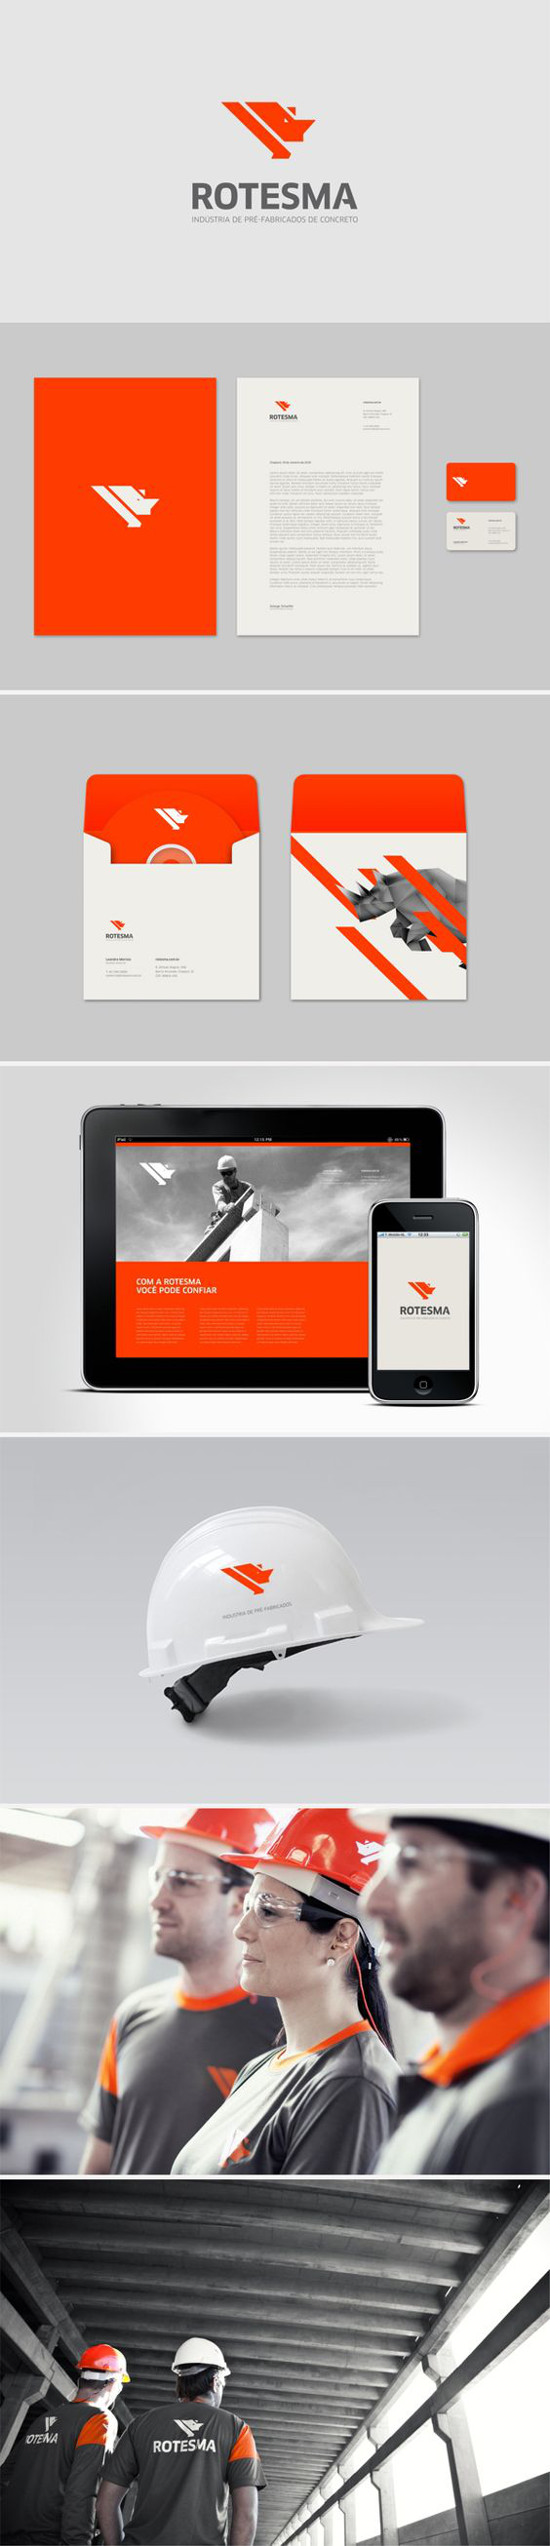 Rotesma Construction Identity